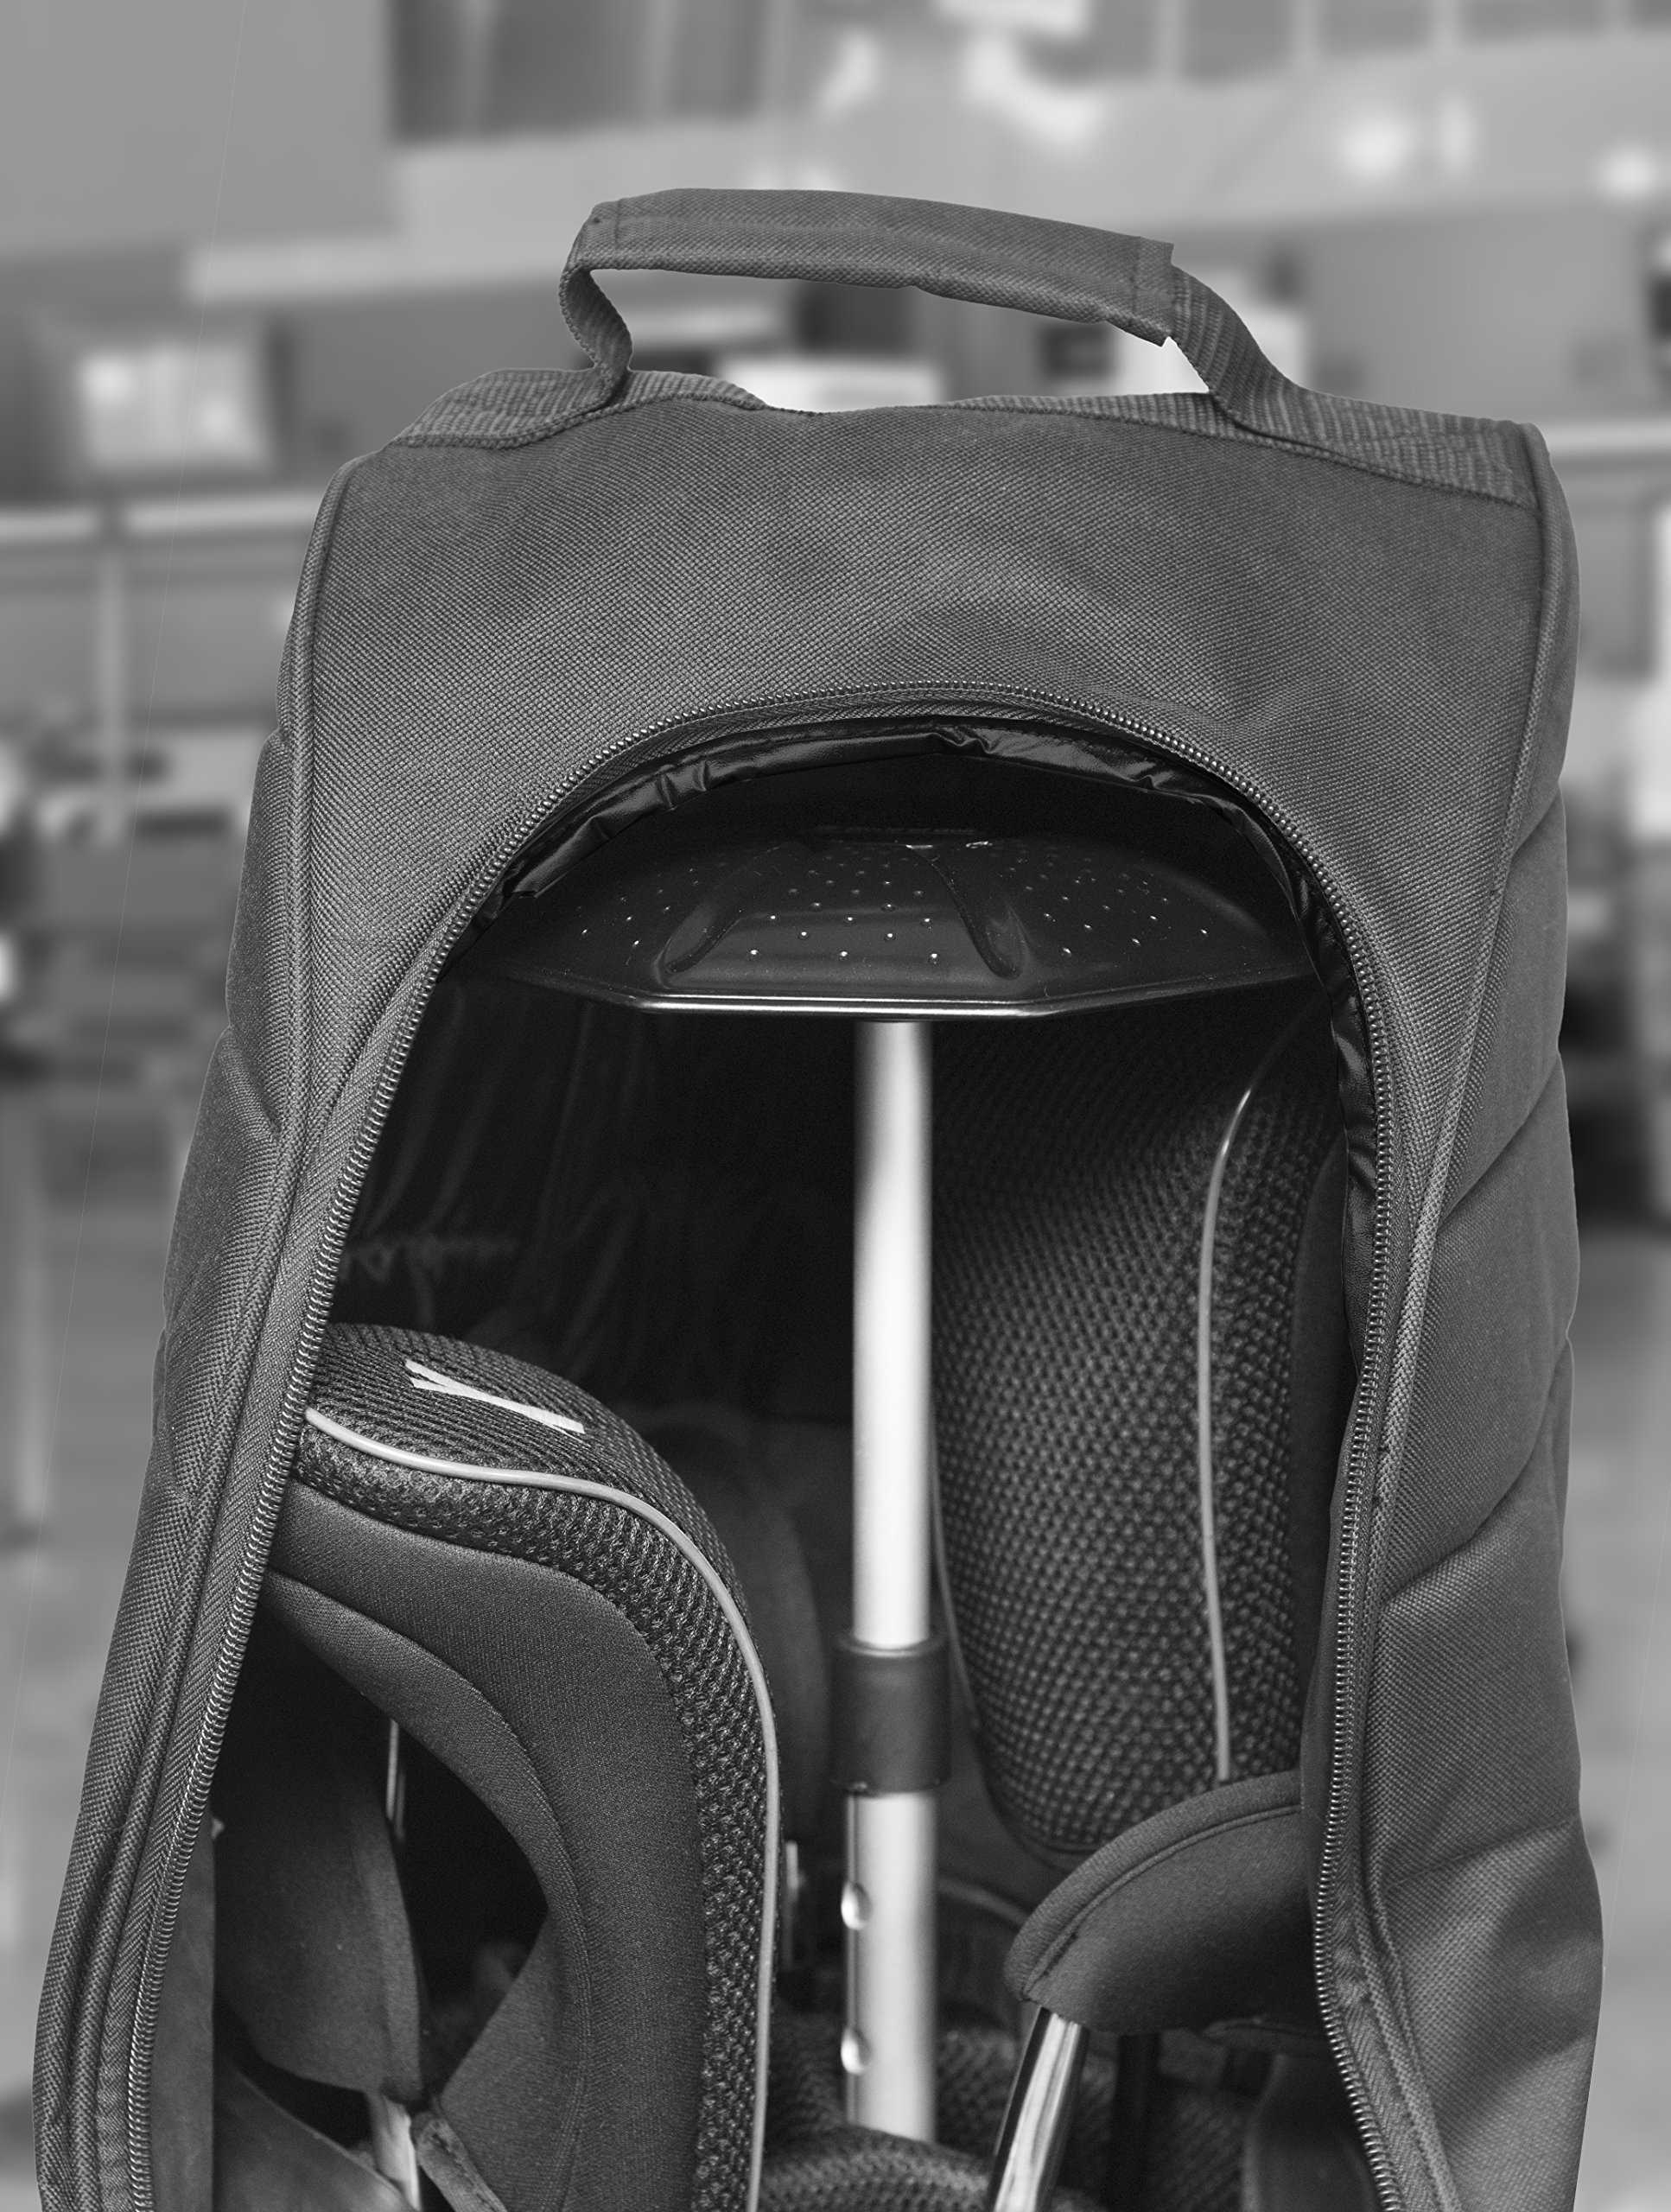 JEF WORLD OF GOLF The Protector Golf Club Travel Support Protection by JEF WORLD OF GOLF (Image #4)